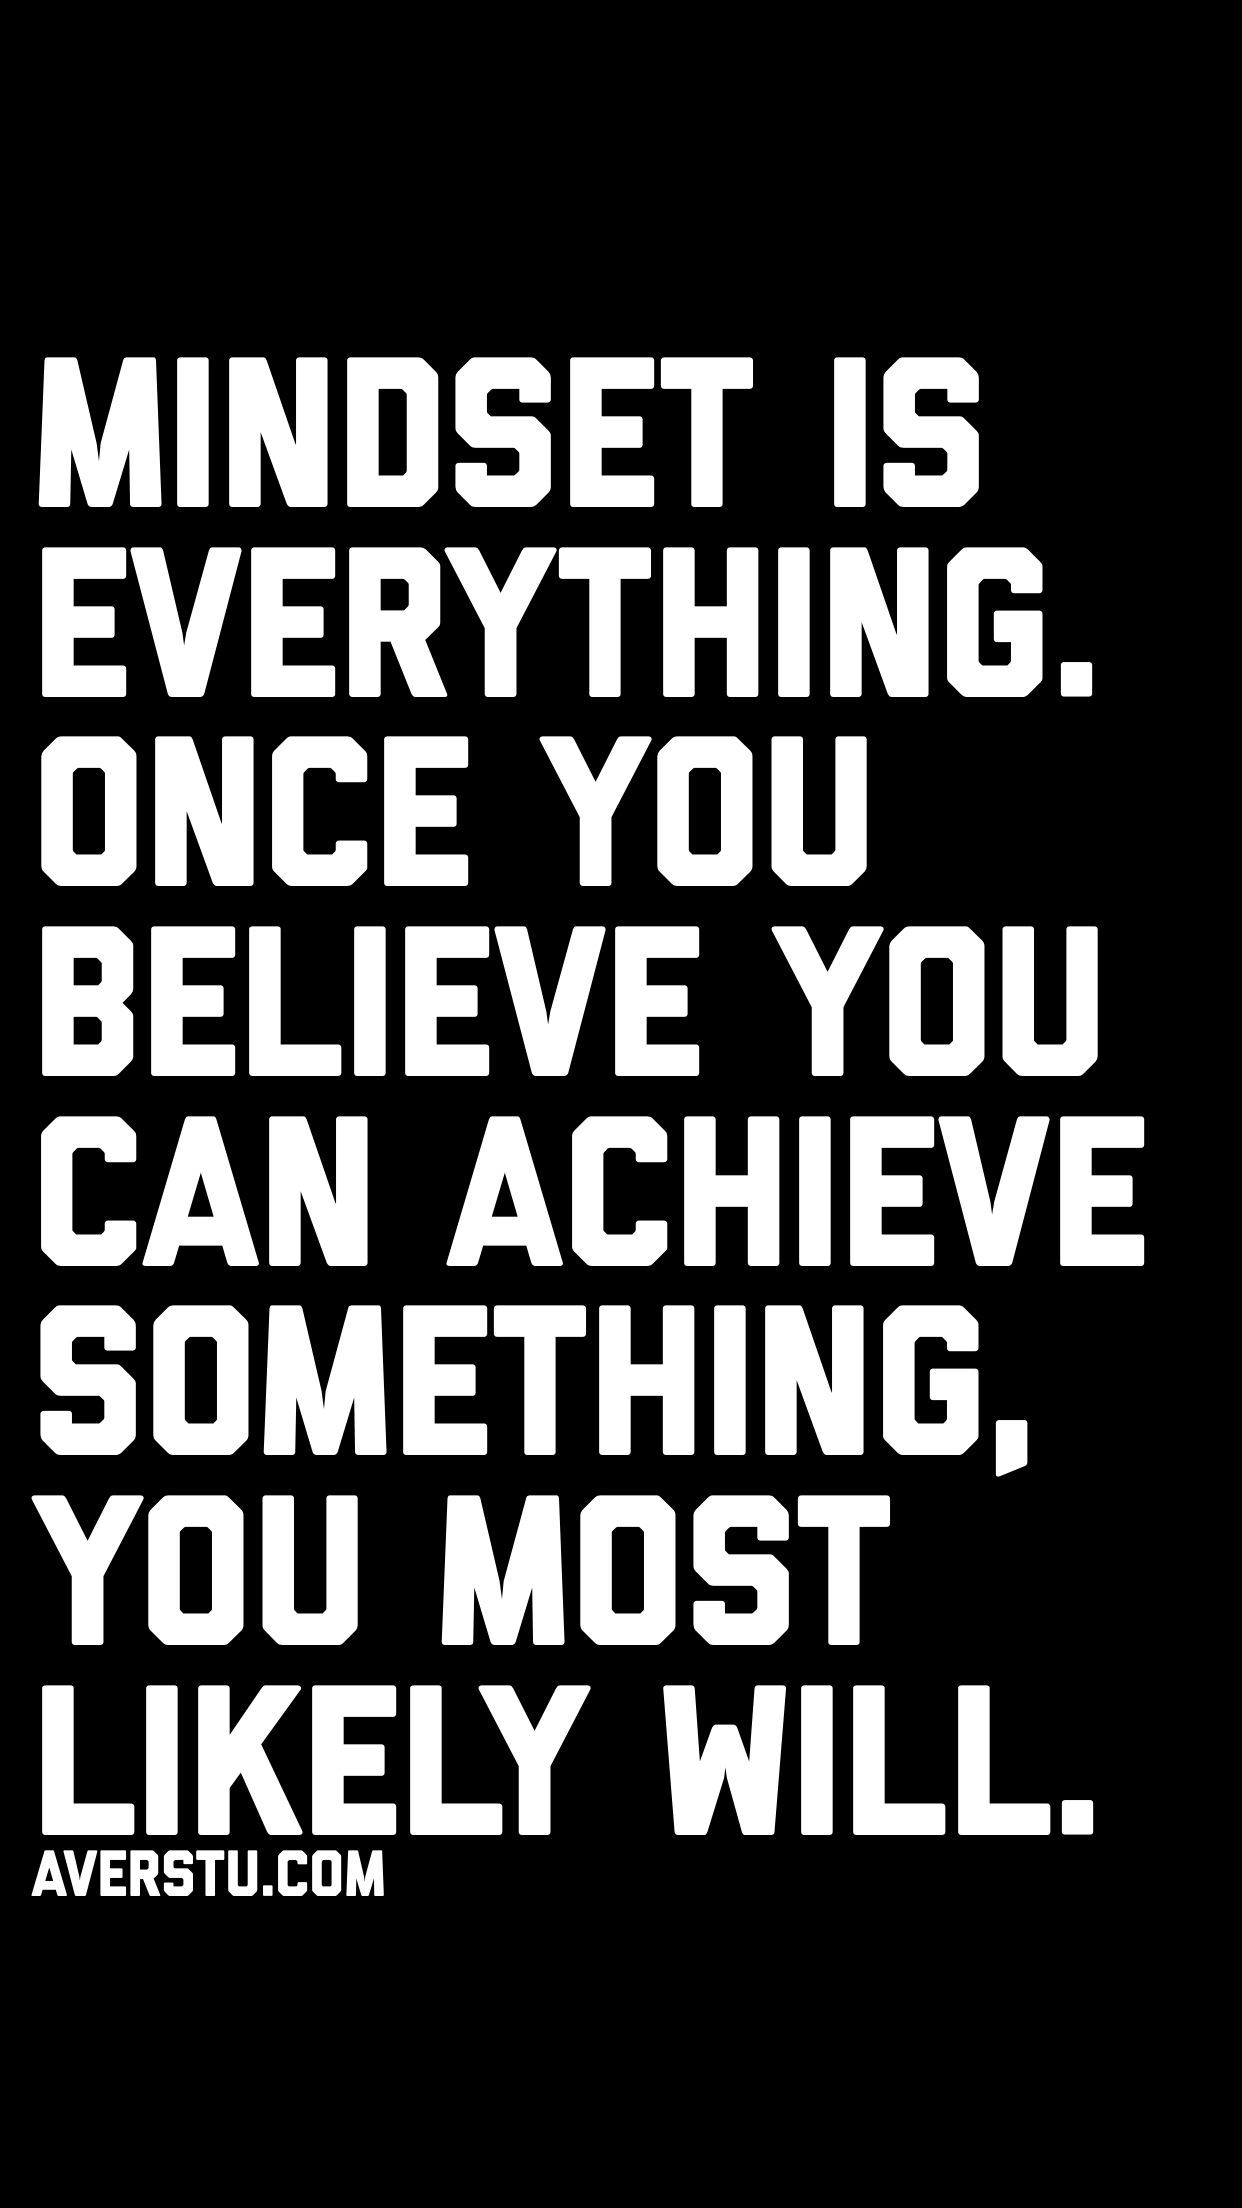 Mindset Is Everything Once You Believe You Can Achieve Something You Most Likely Will Mostinspi Achievement Quotes Believe In Yourself Quotes Wisdom Quotes